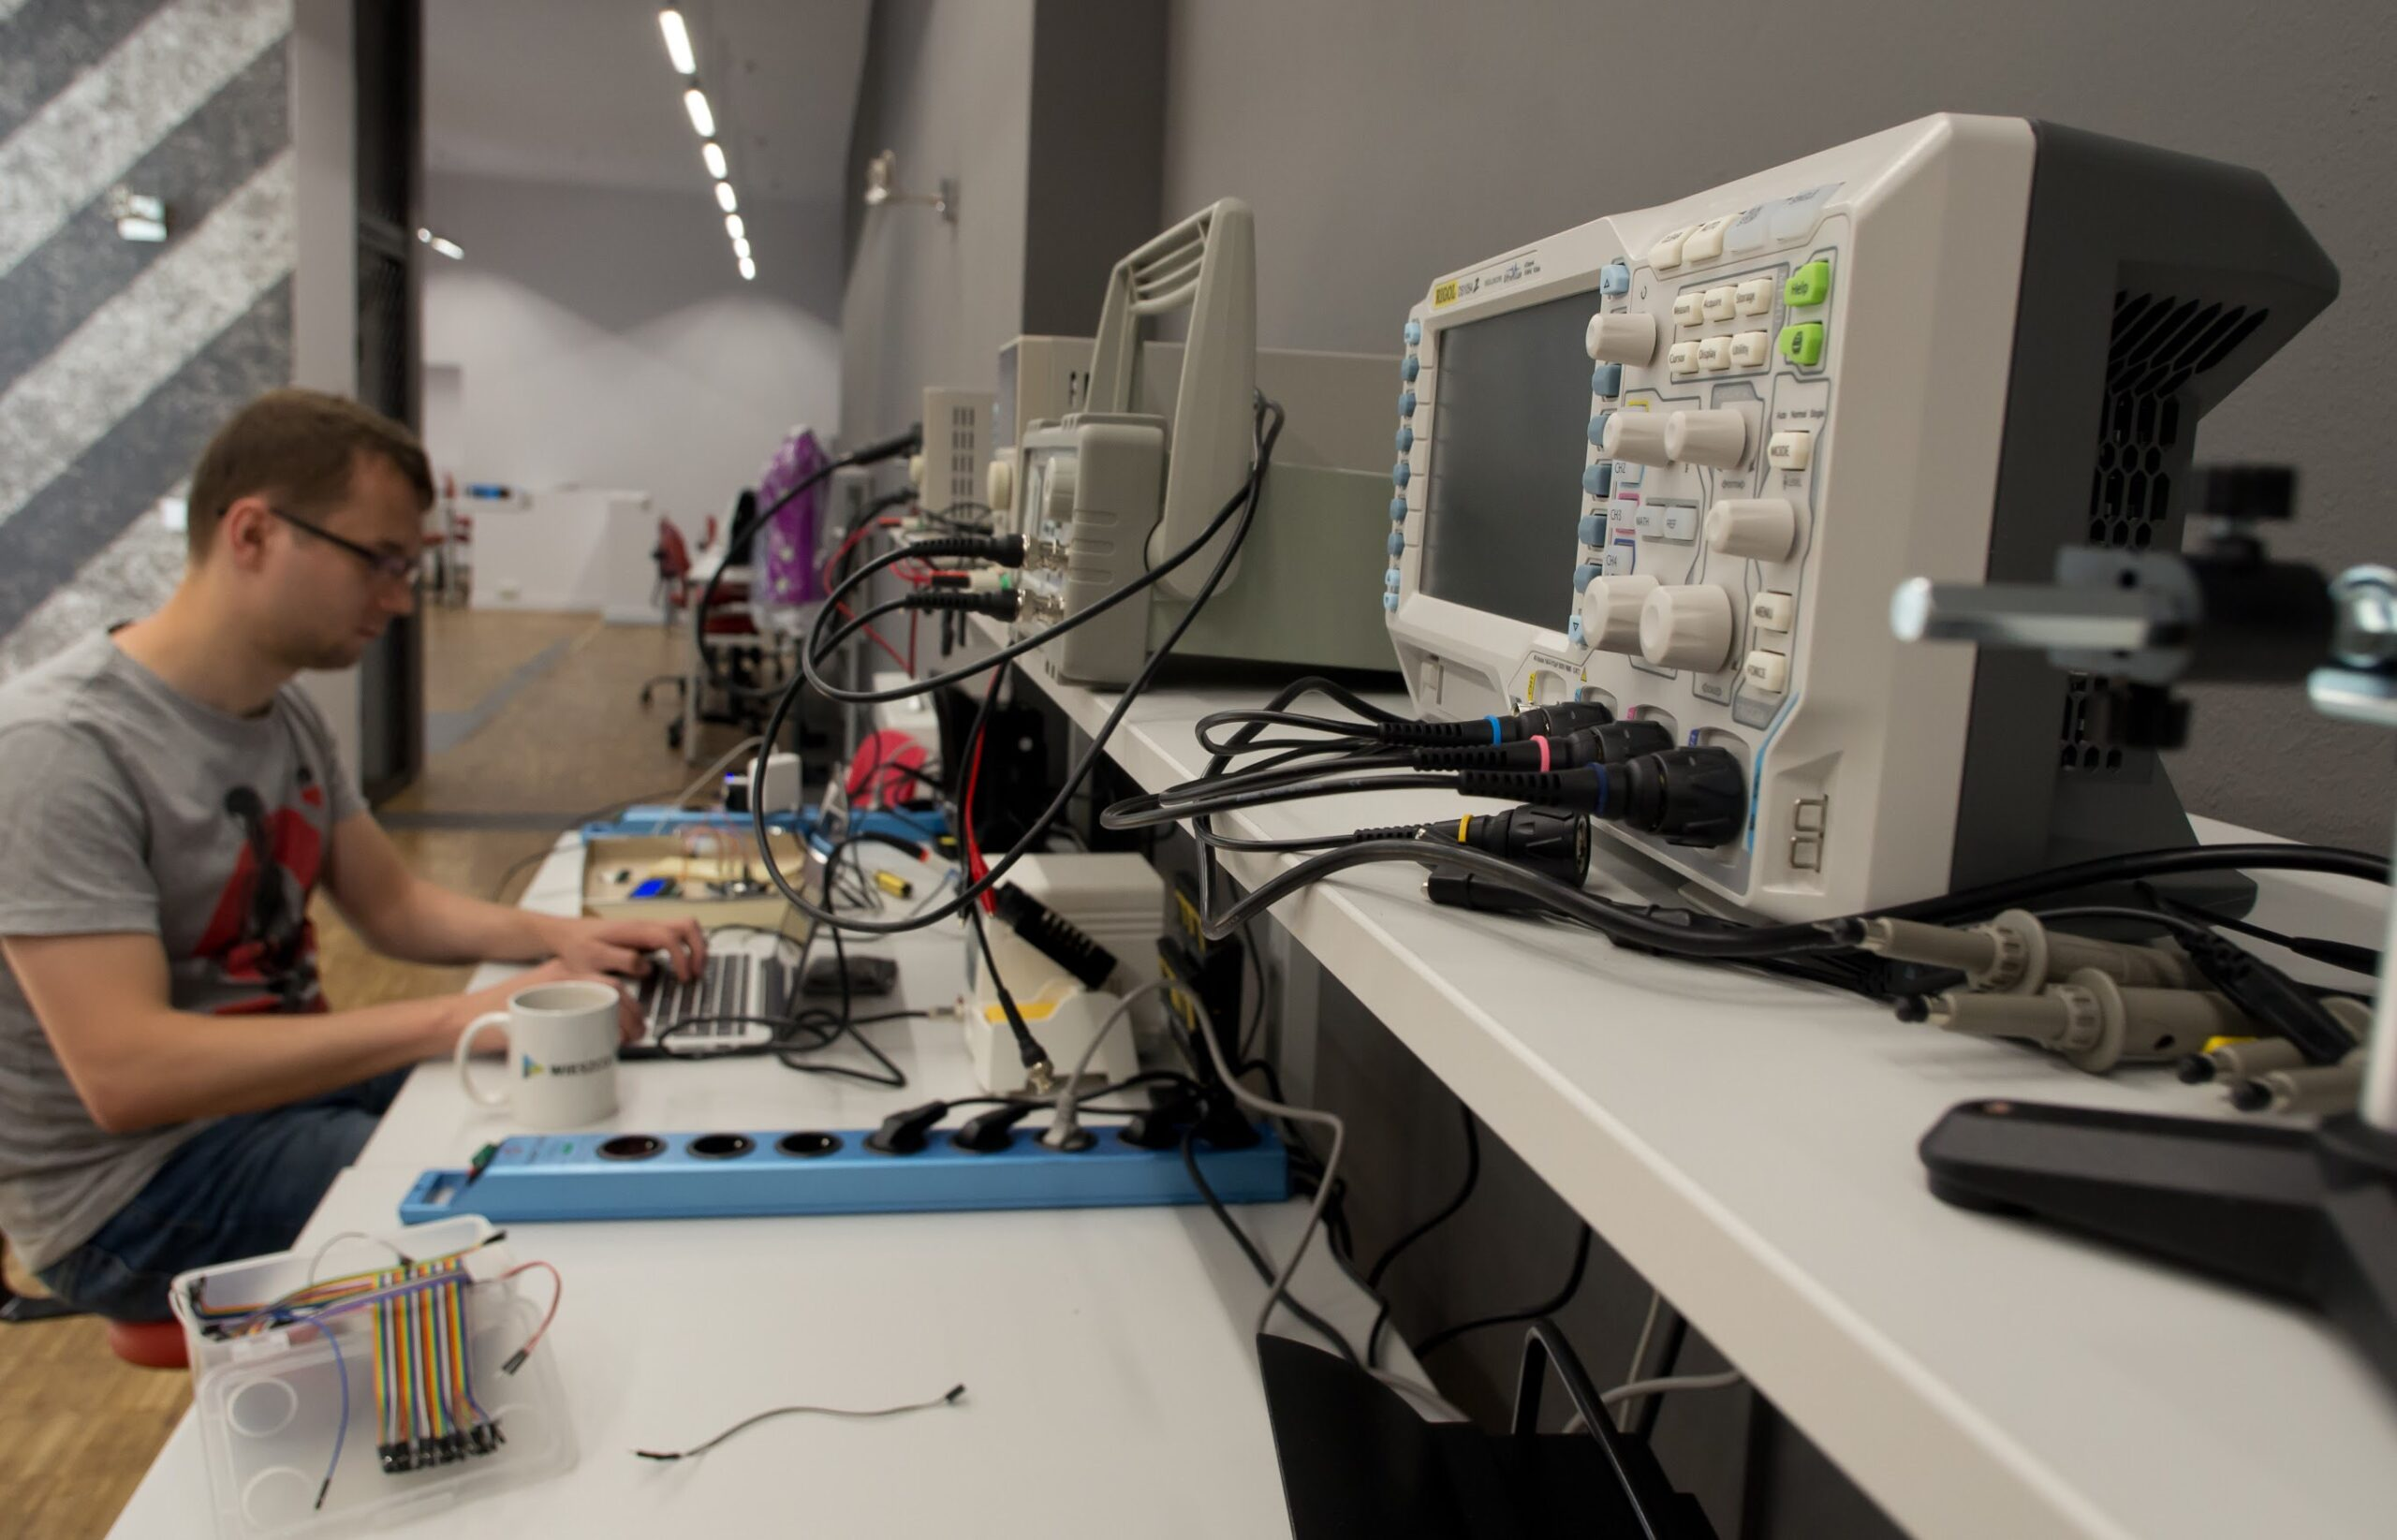 , FabLab Krakow Invites Hardware Makers To Learn, Experiment And Build Things